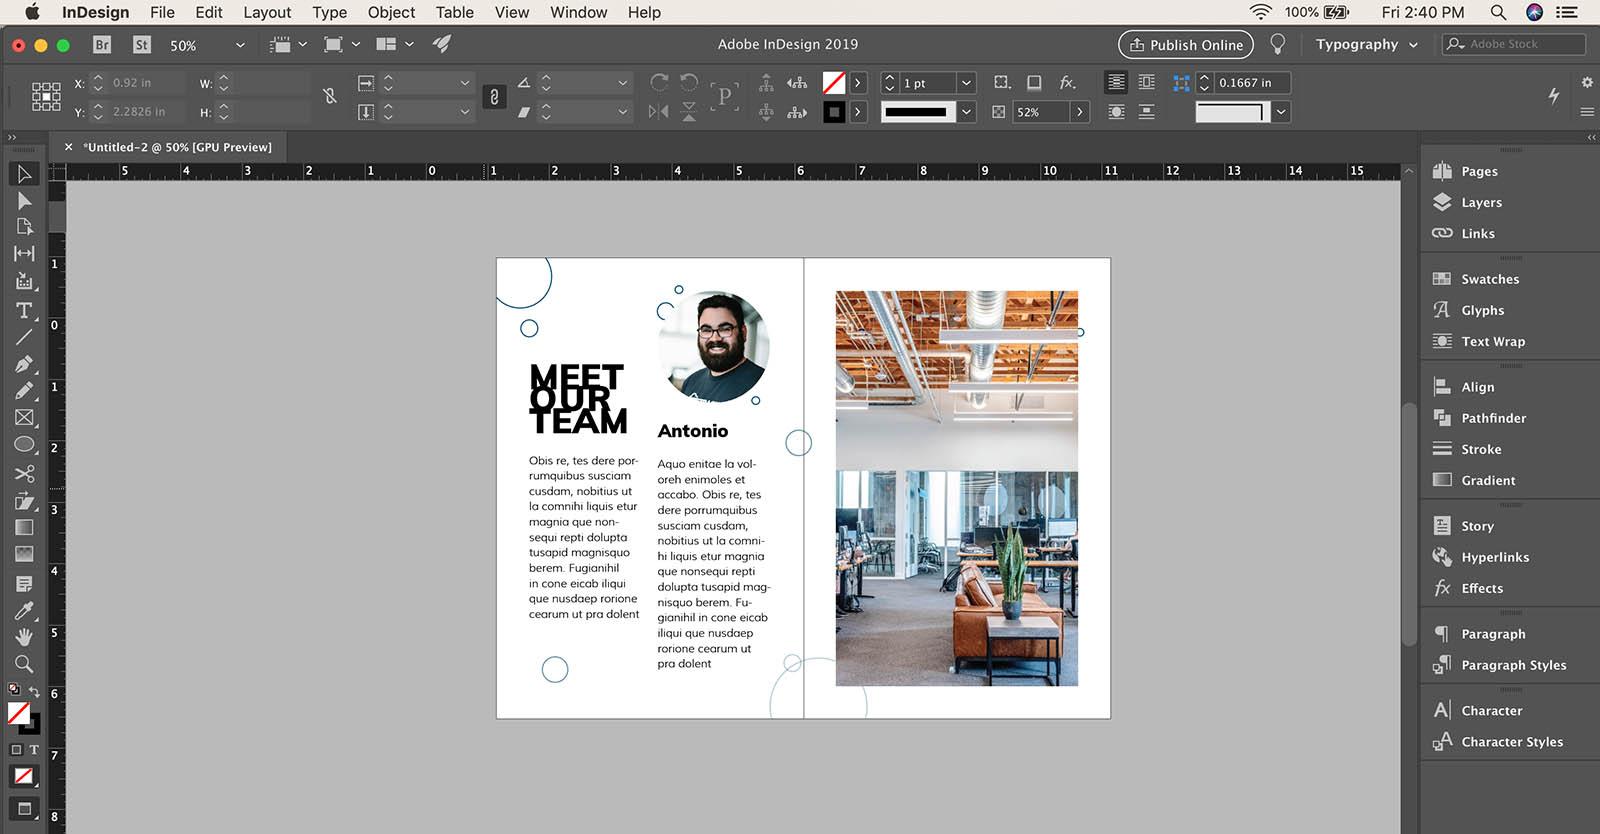 How to change gutter width in InDesign